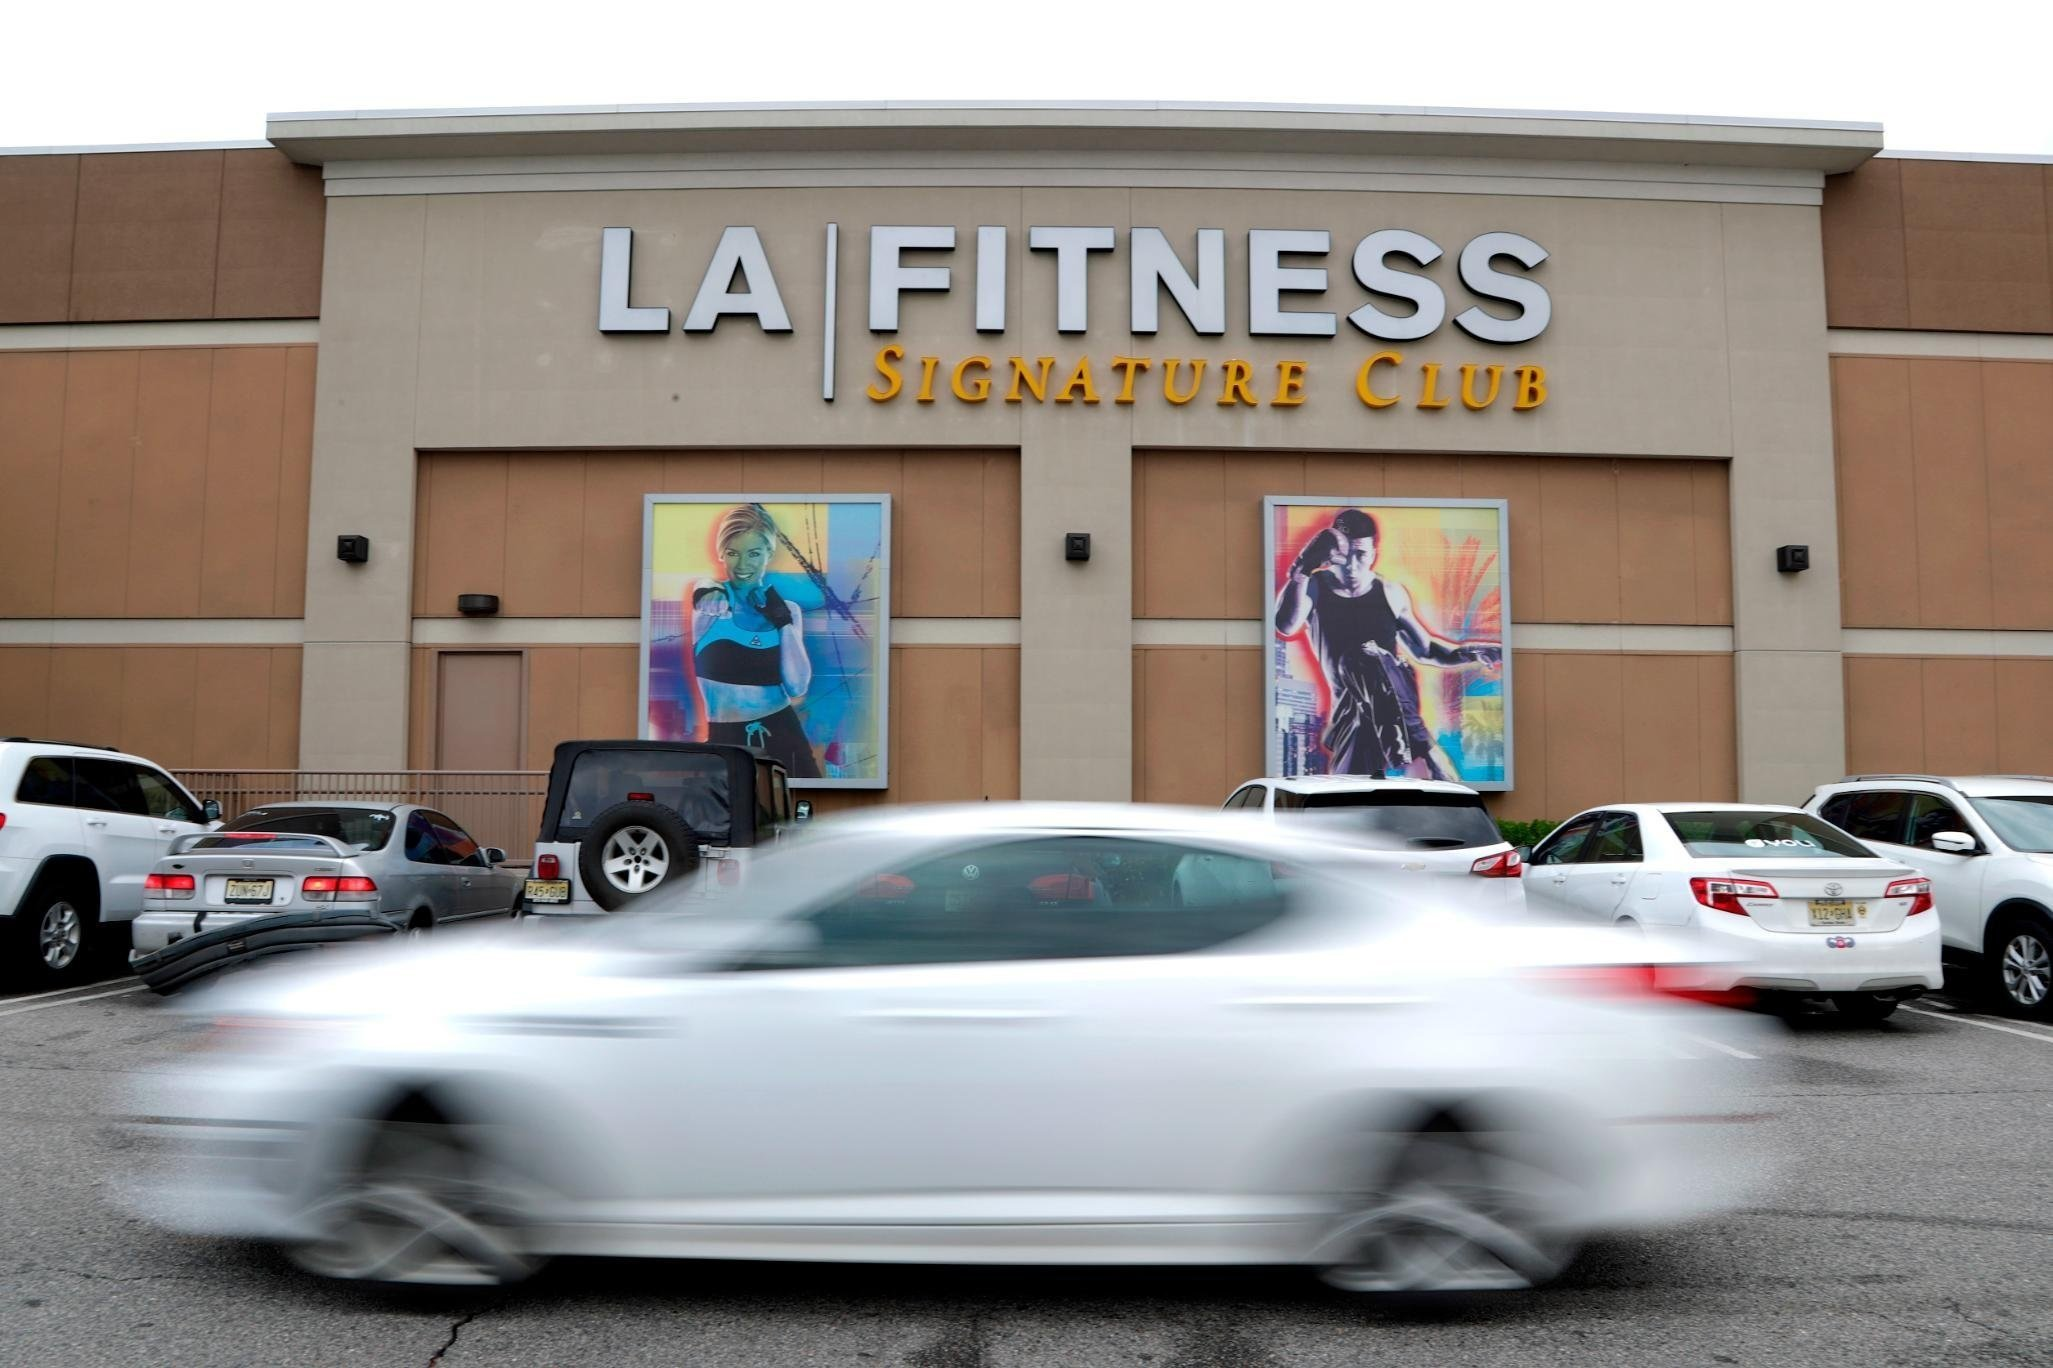 LA Fitness fires workers and apologizes after racial incident